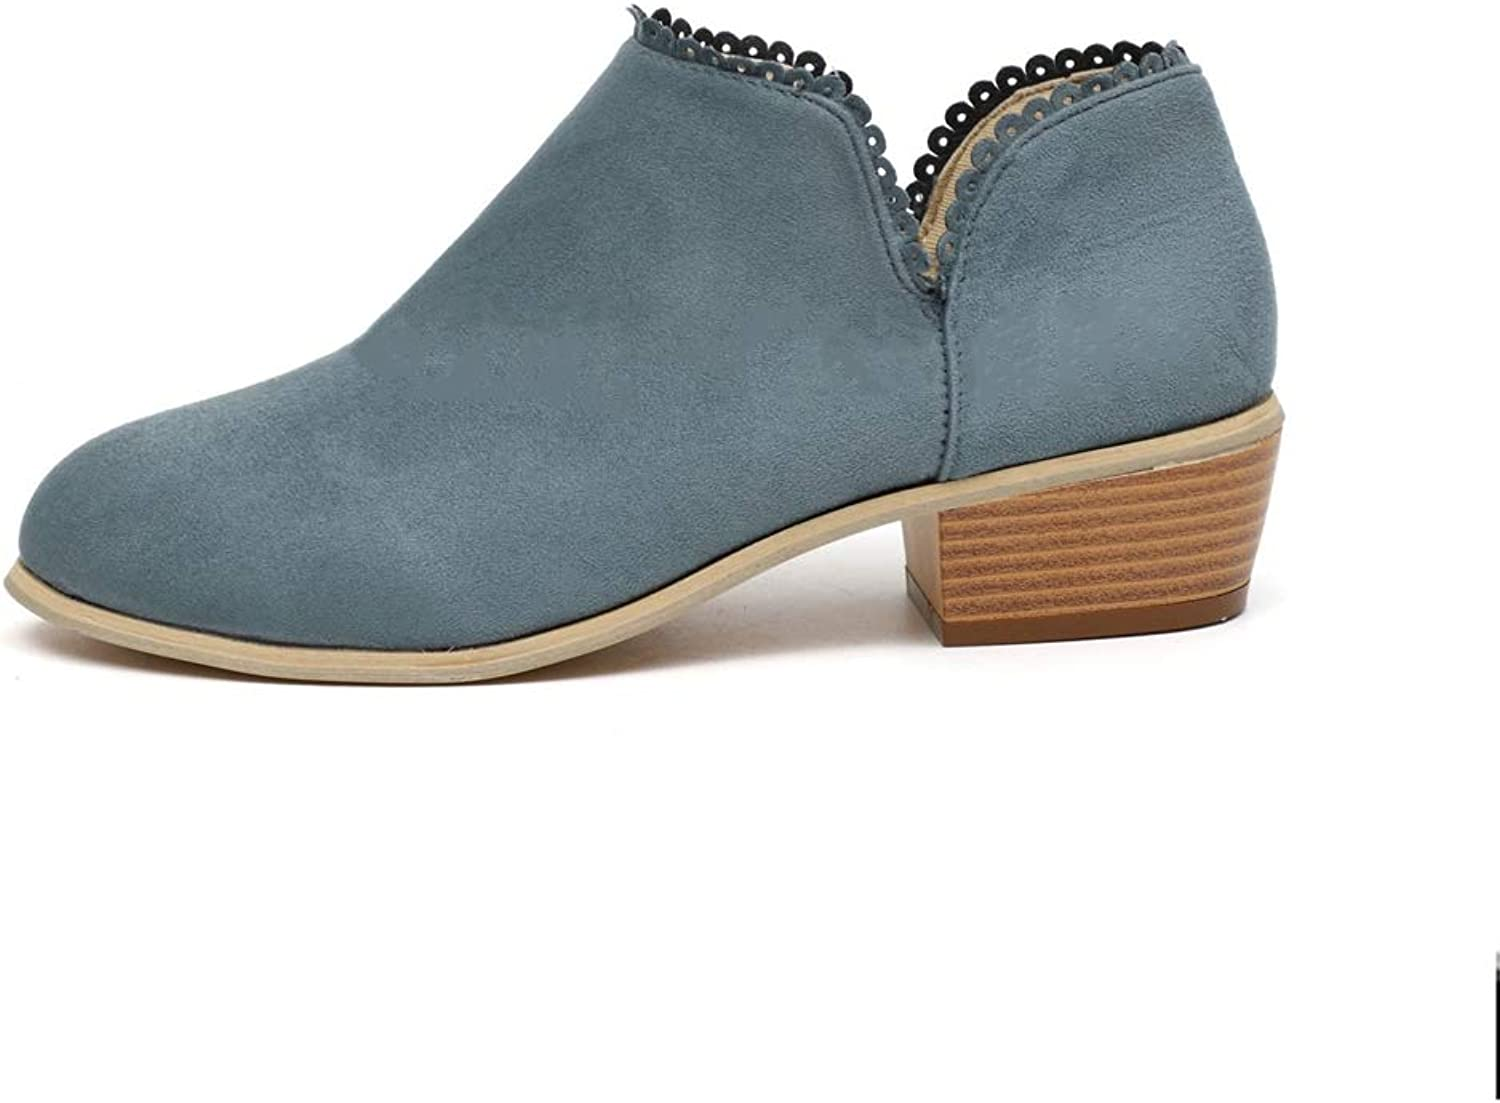 Eric Carl Womens Fashion Short Boot Low Heel Ankle Boots